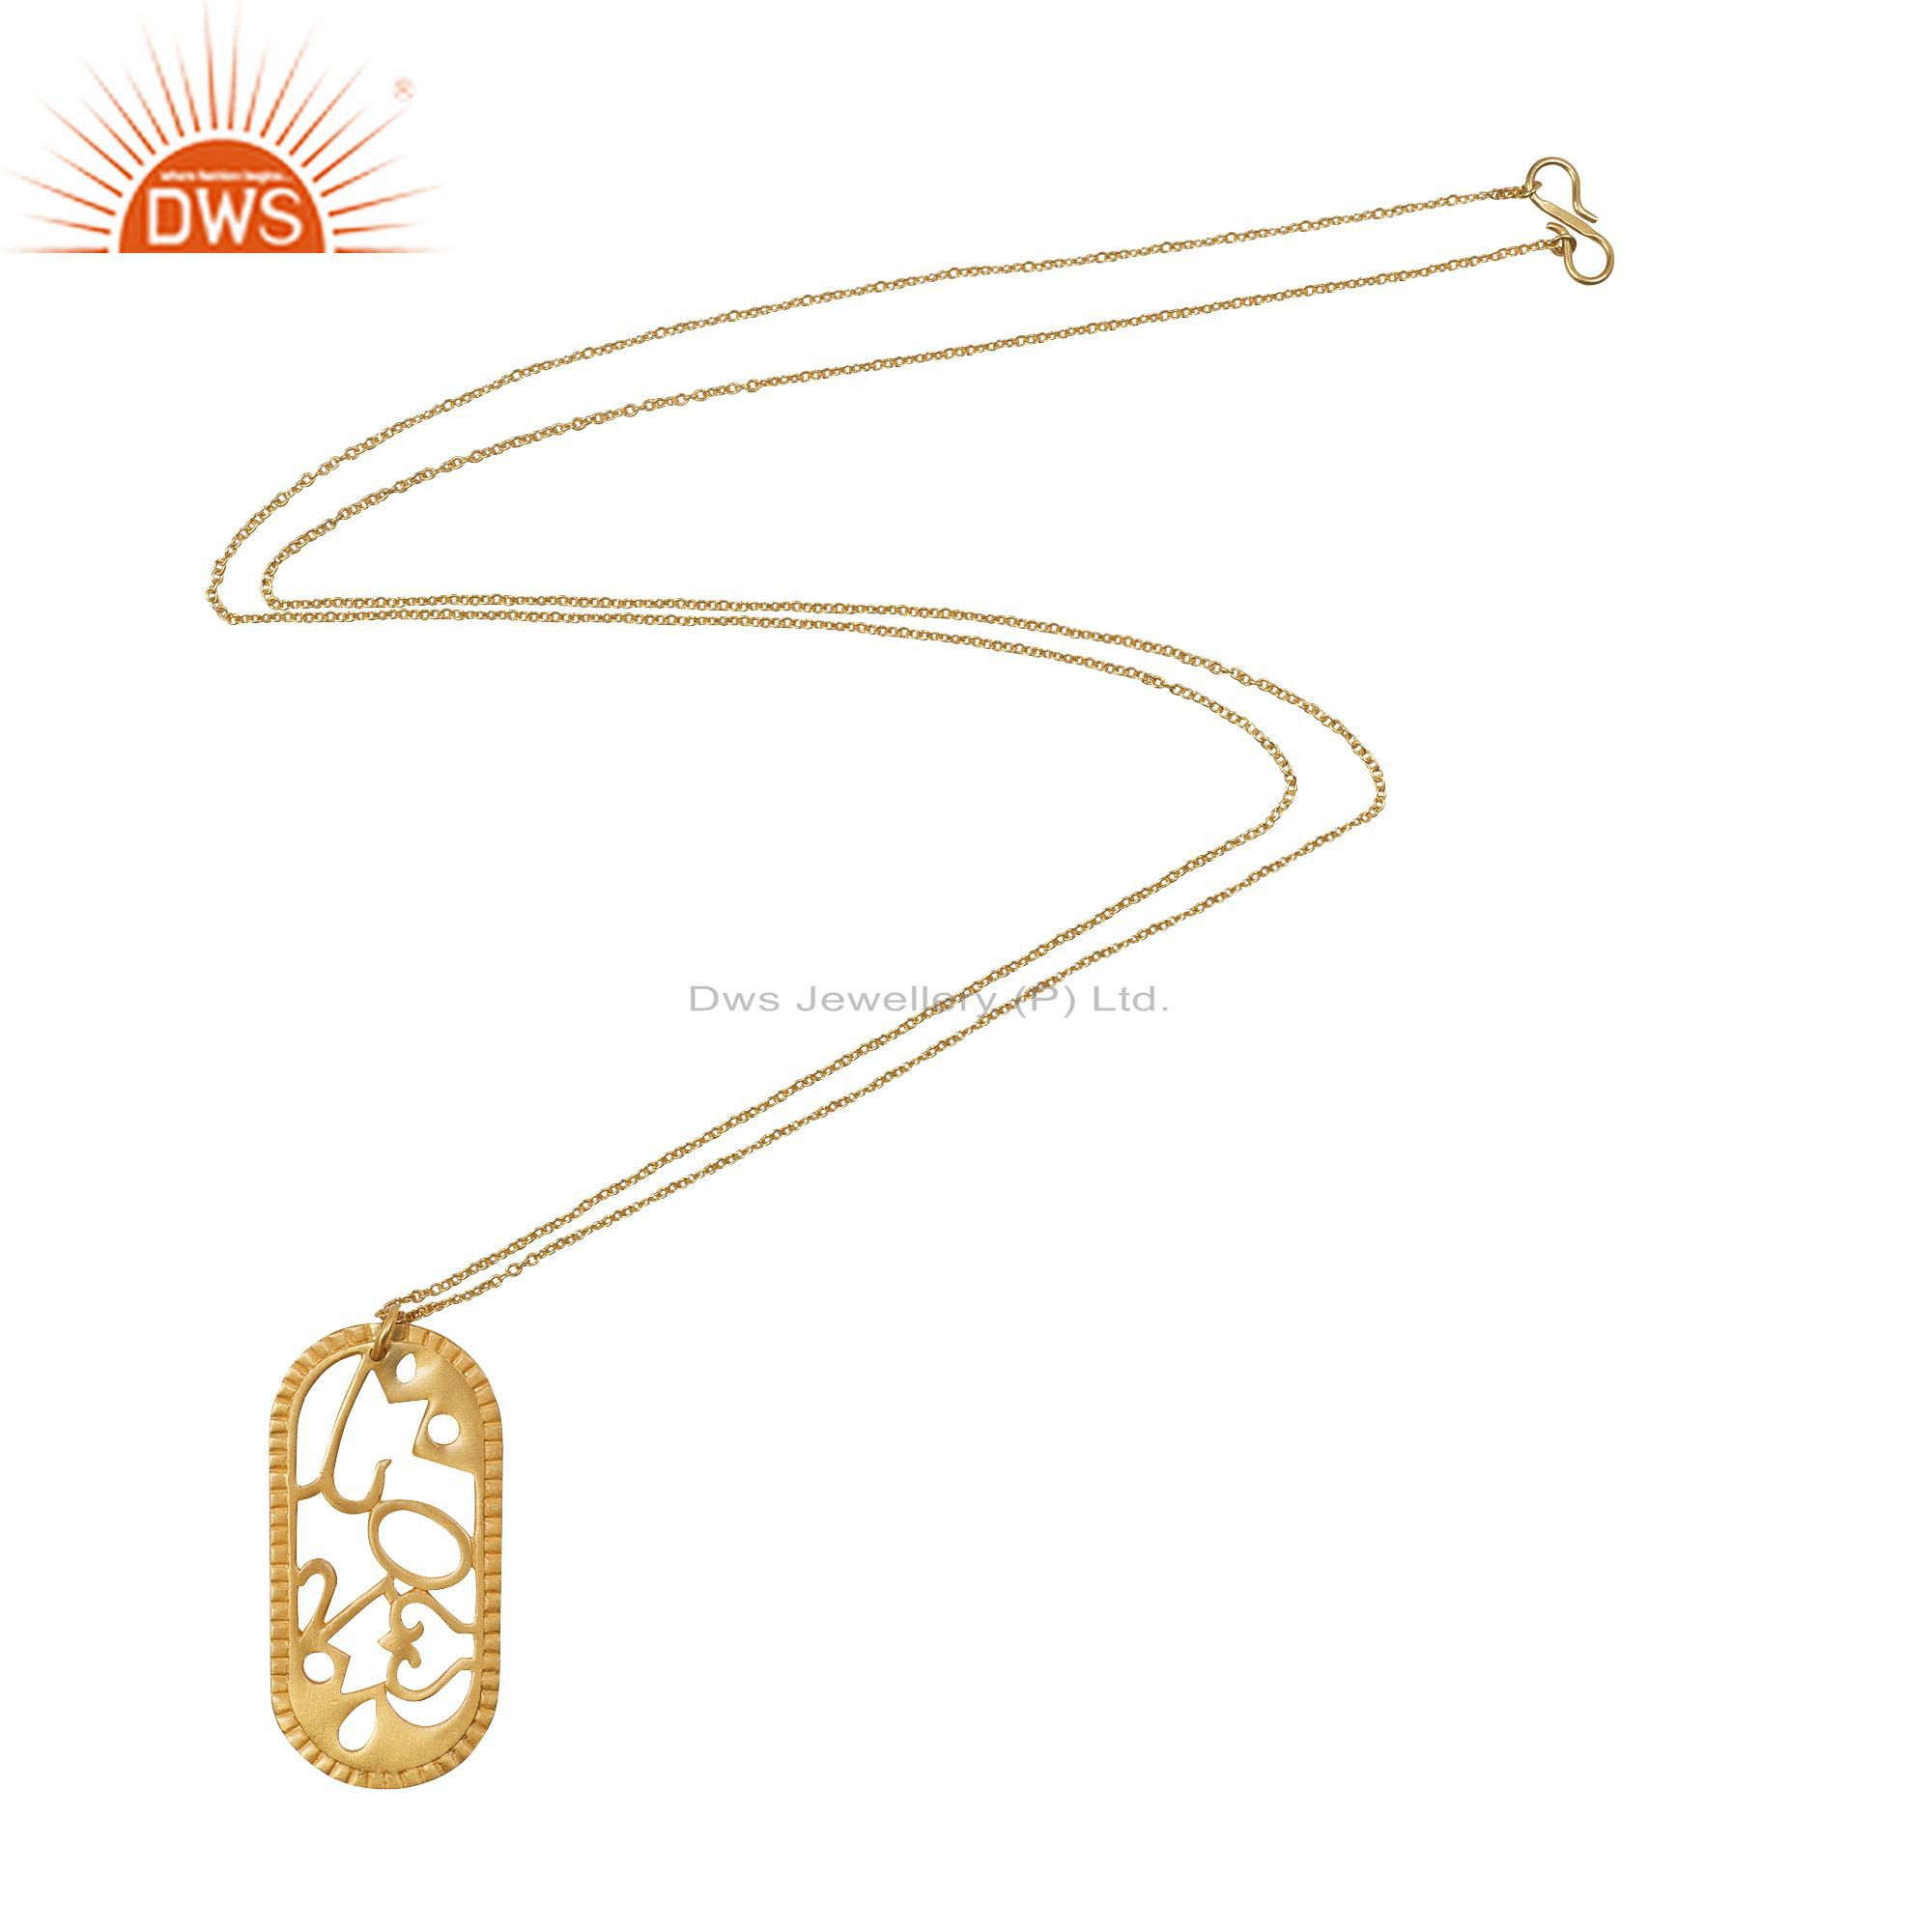 18K Yellow Gold Plated Sterling Silver Designer Pendant With Chain